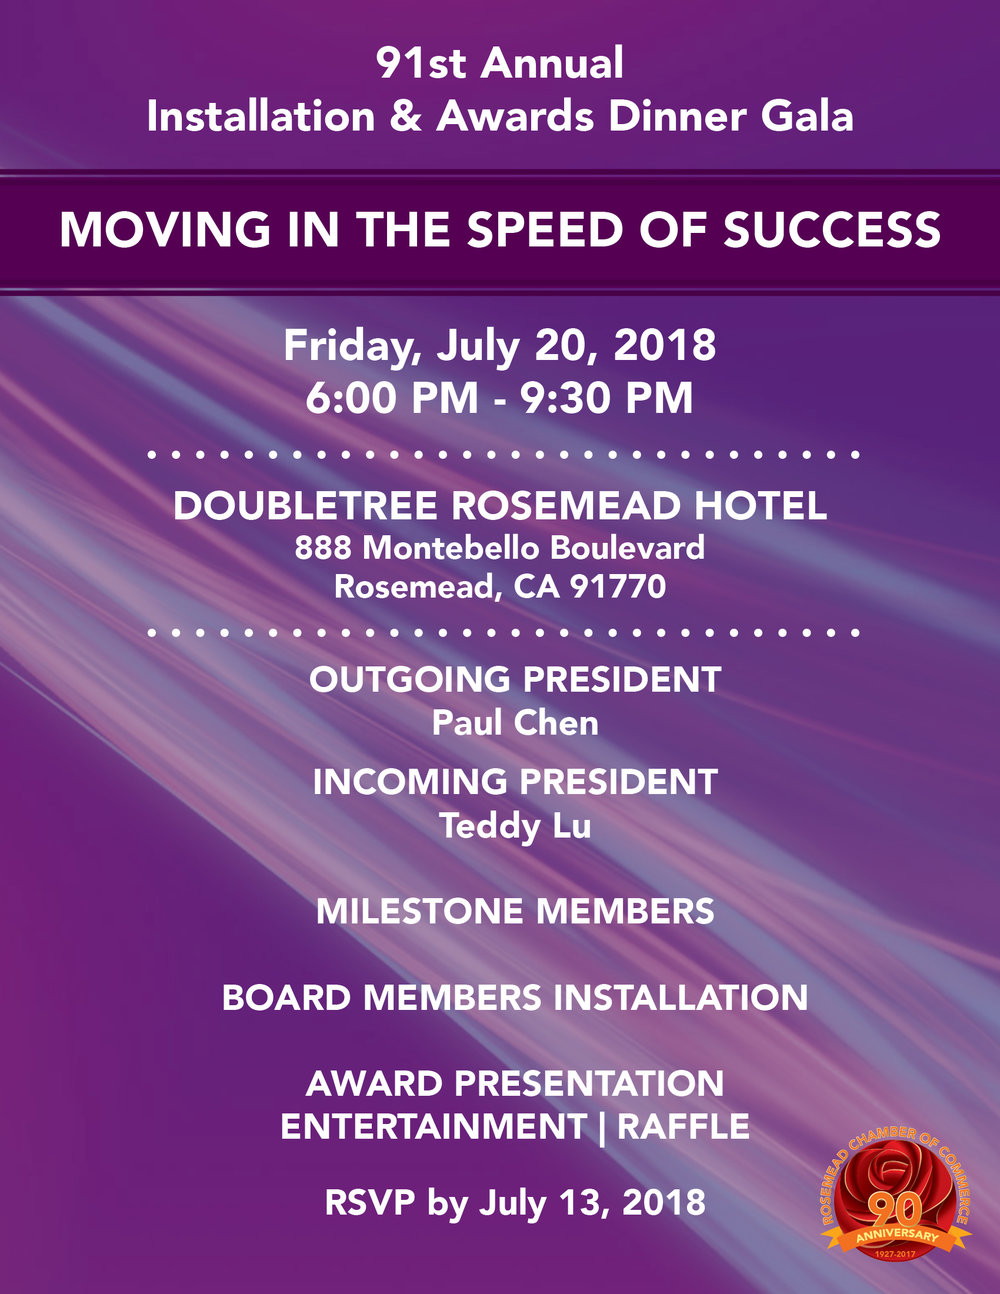 91st Annual installation &awards dinner gala - Friday, July 20, 2018Click for More Information and for Sponsorship Opportunities